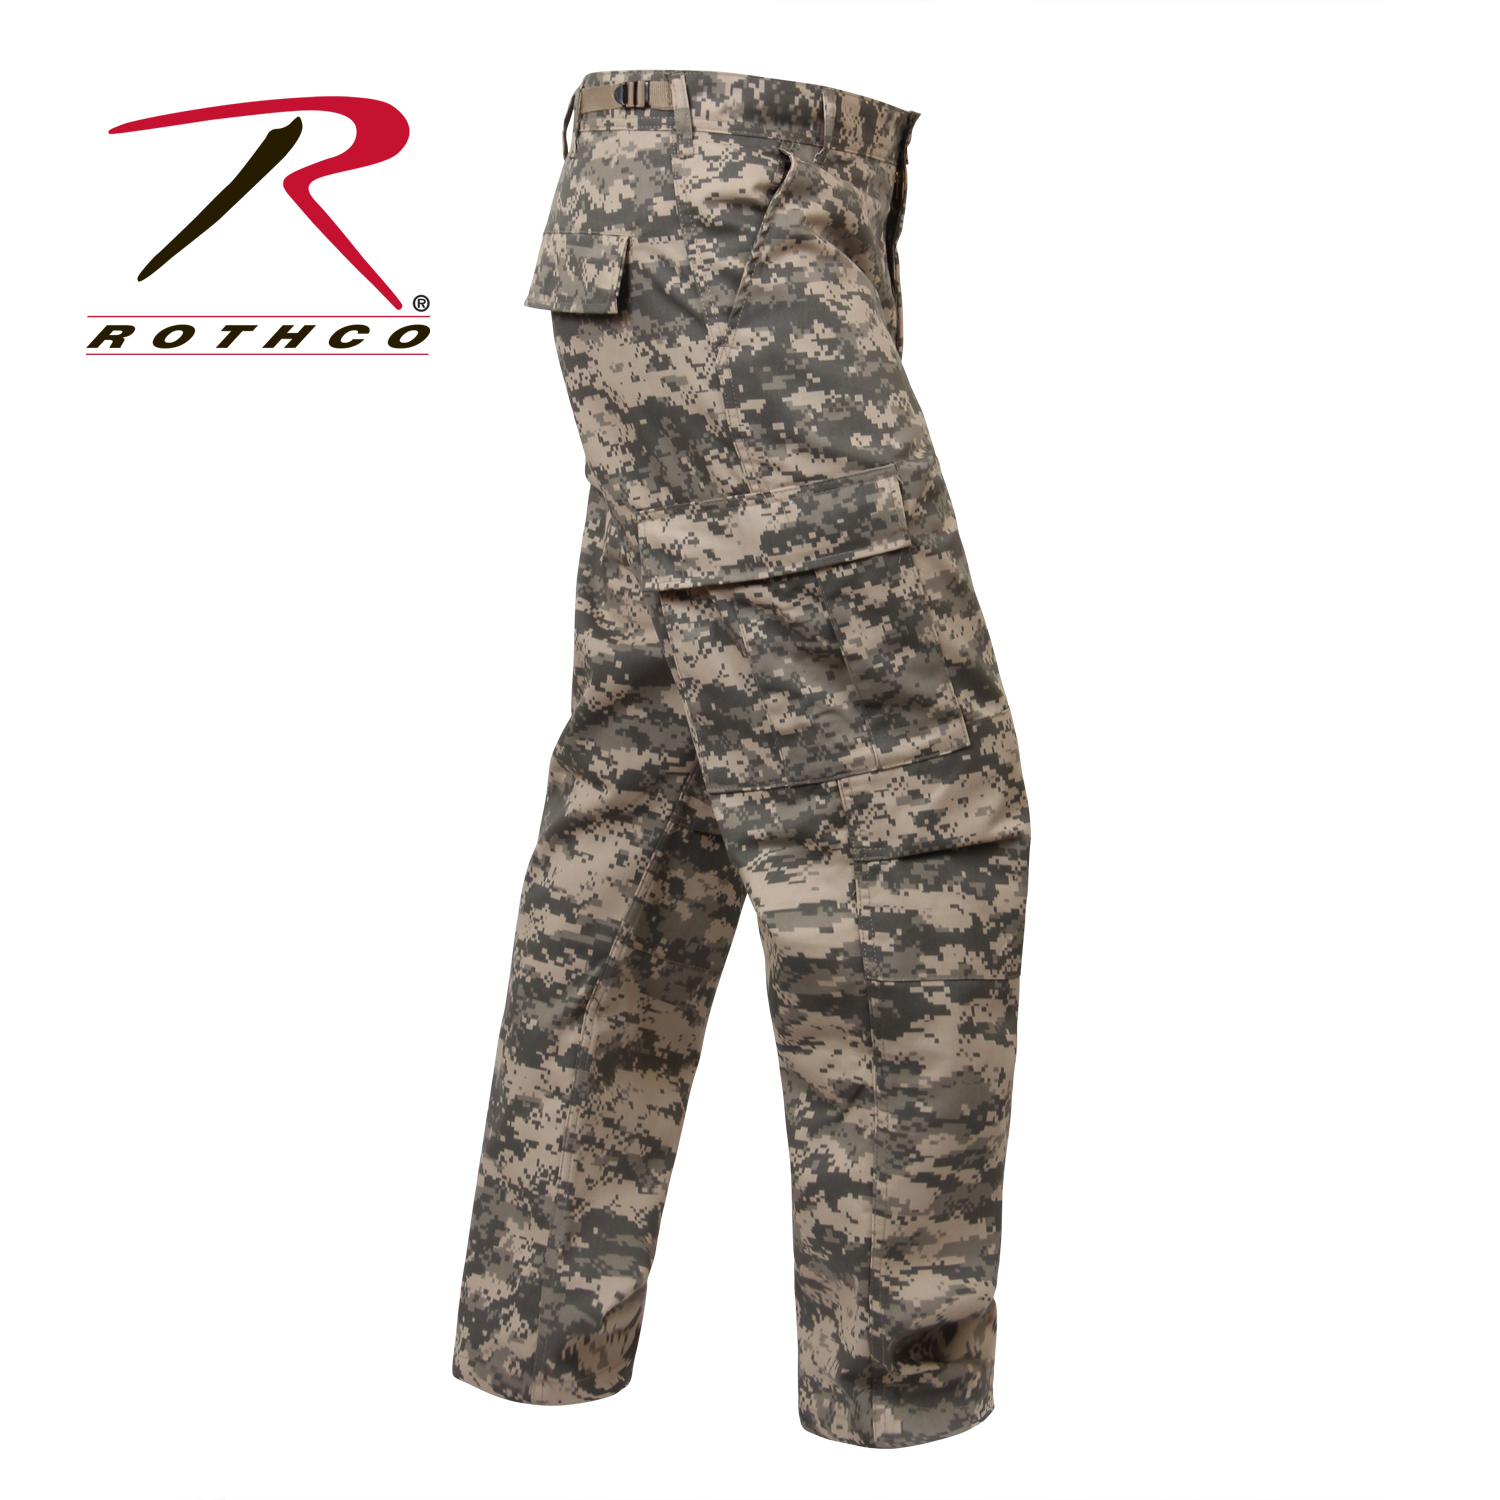 0115b96f164a3 Rothco Digital Camo Tactical BDU Pants